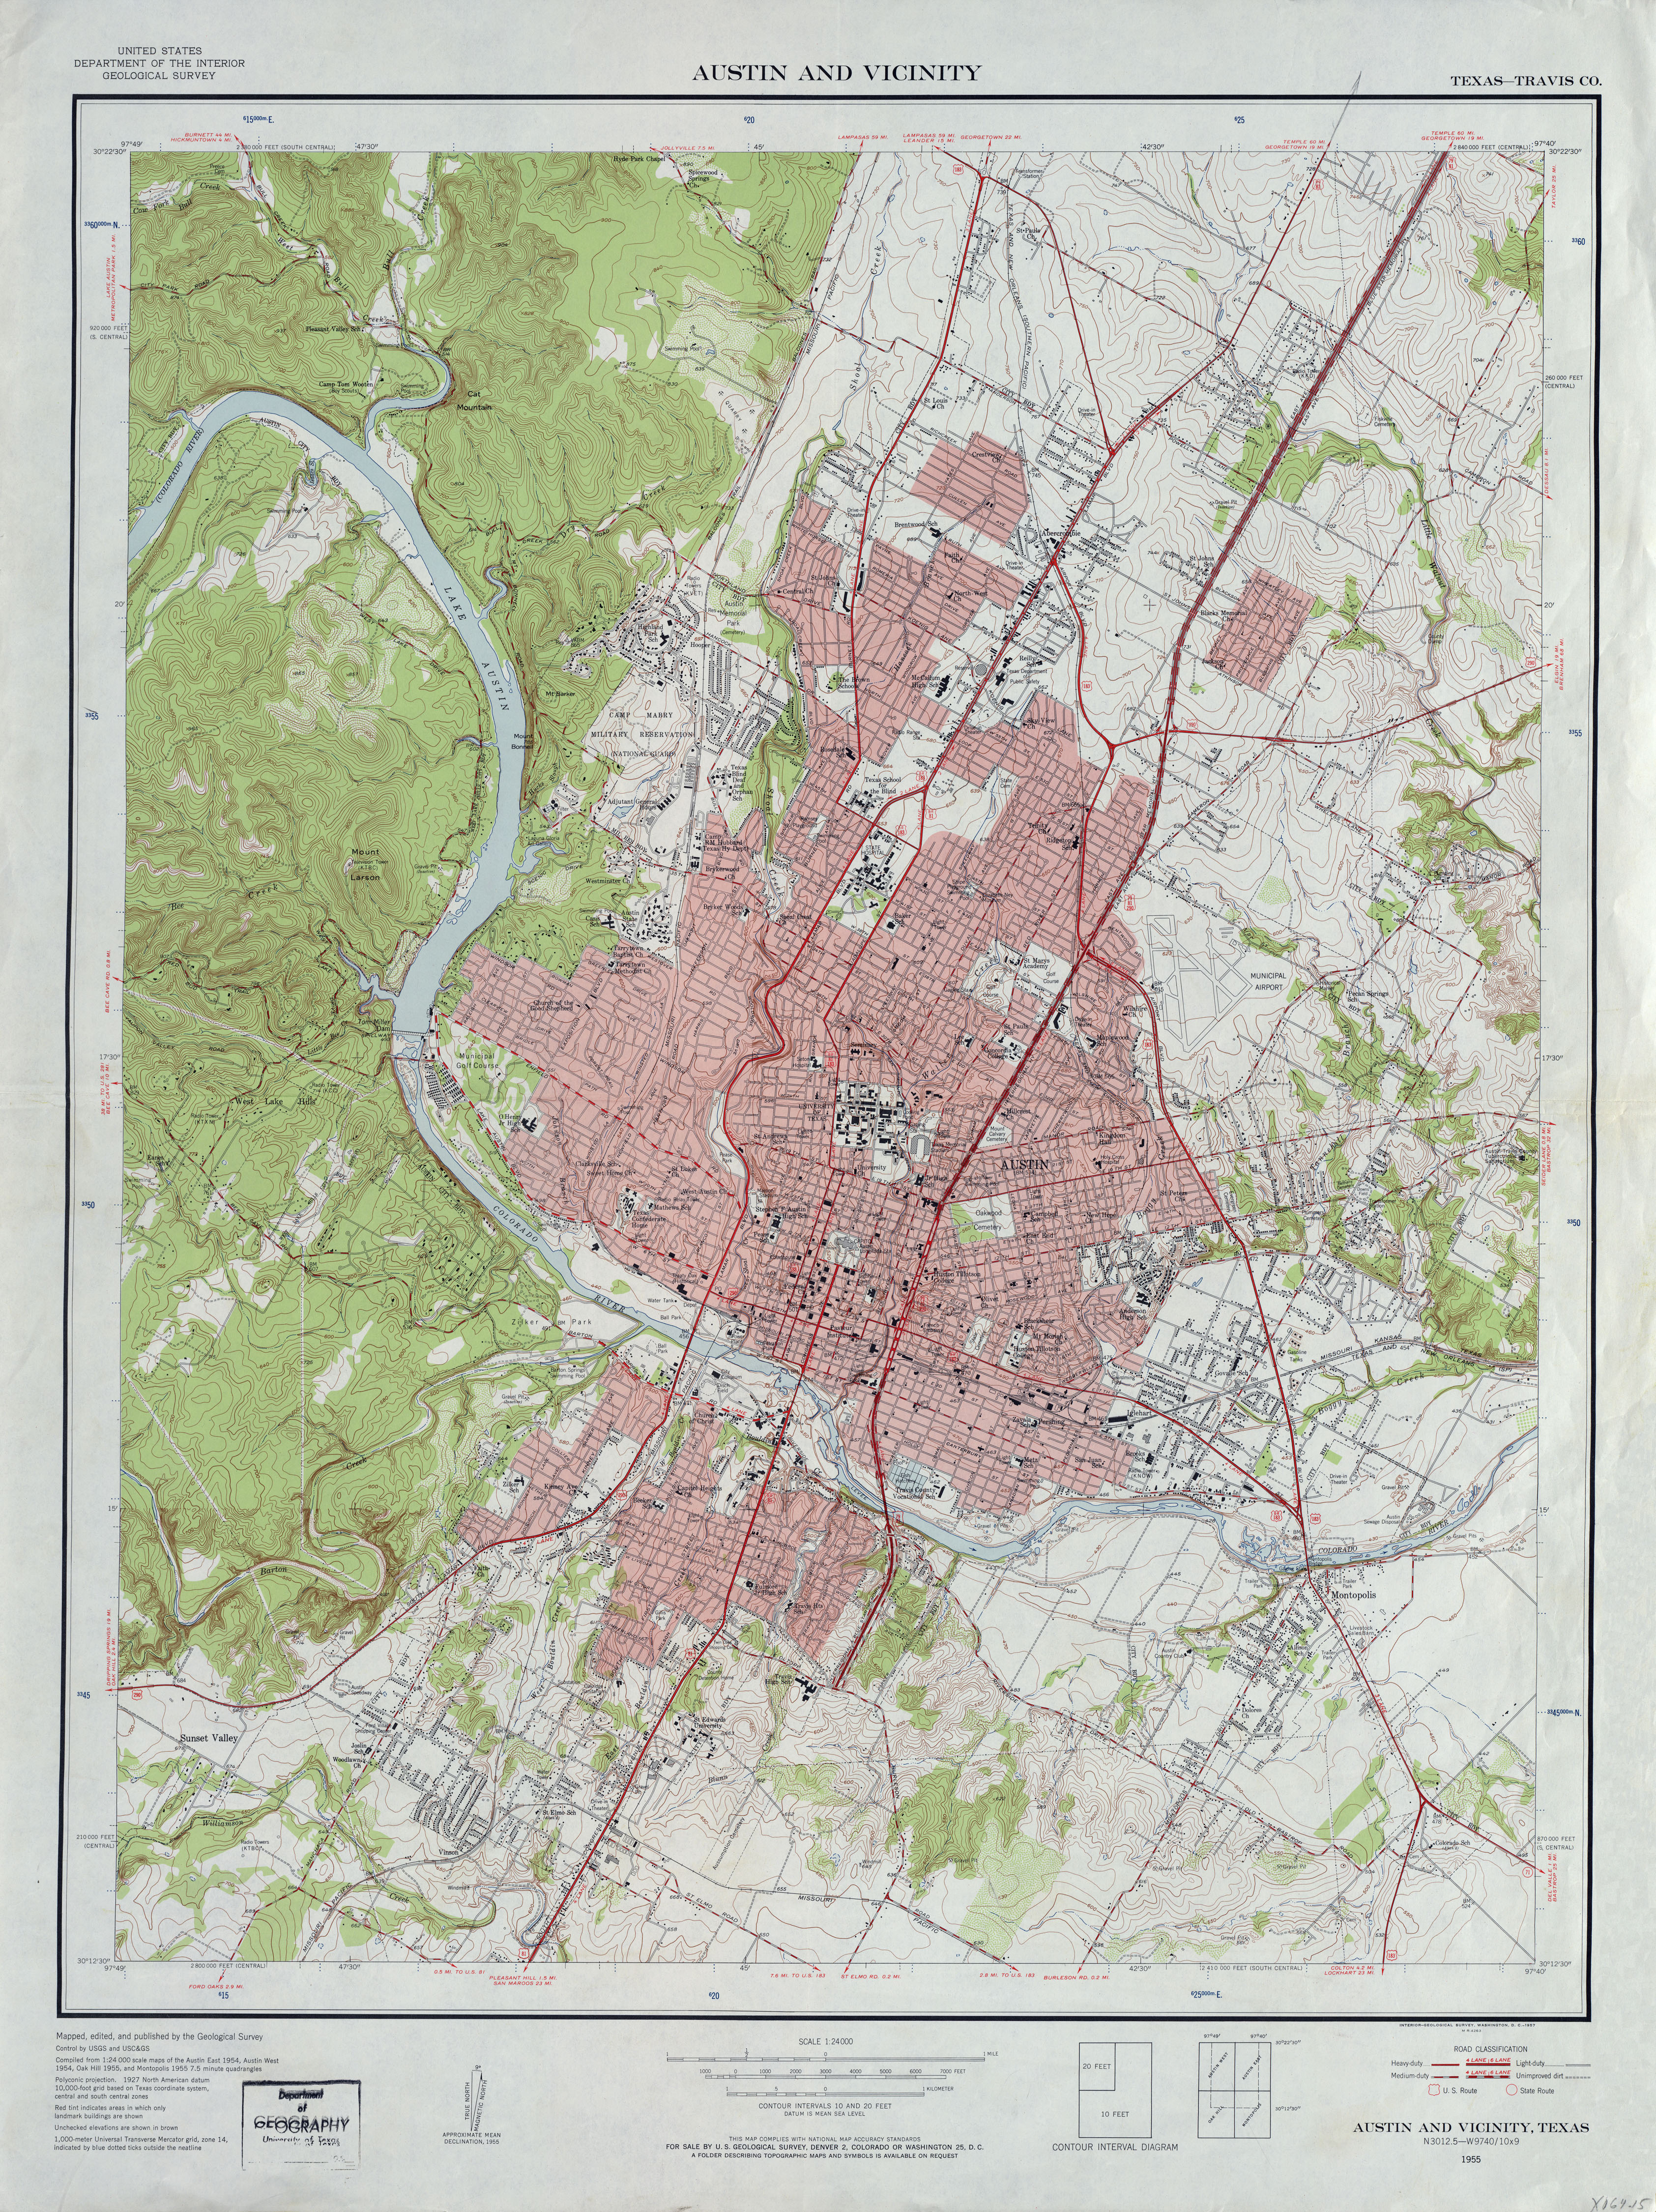 austin texas topographic maps perry castaneda map collection ut library online austin texas topographic maps perry castaneda map collection ut library online